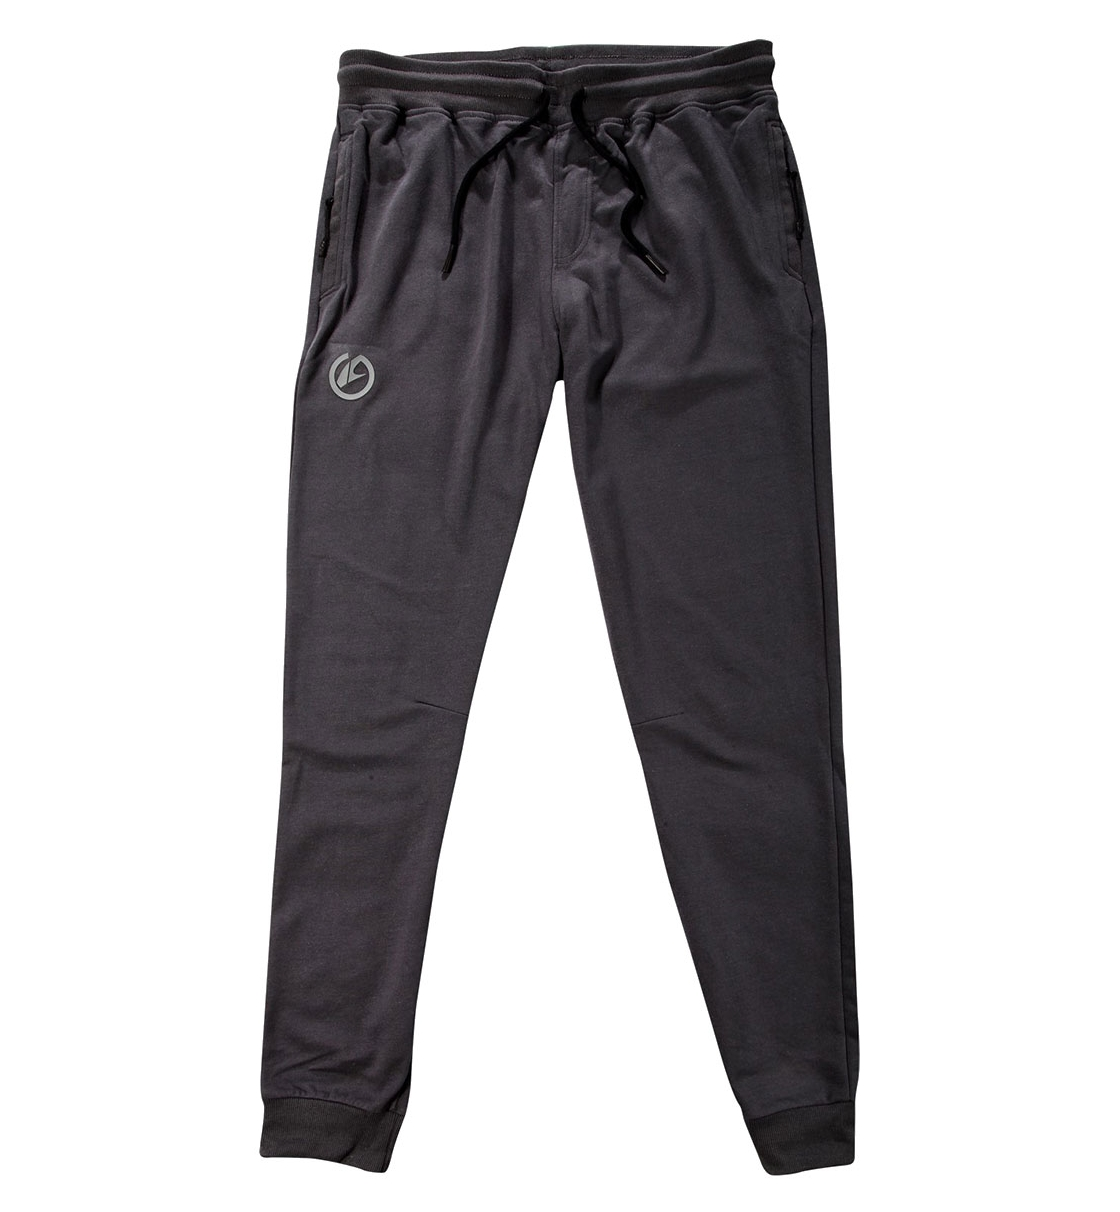 Body Action Ανδρικό Αθλητικό Παντελόνι Men Sportstyle Joggers 023850